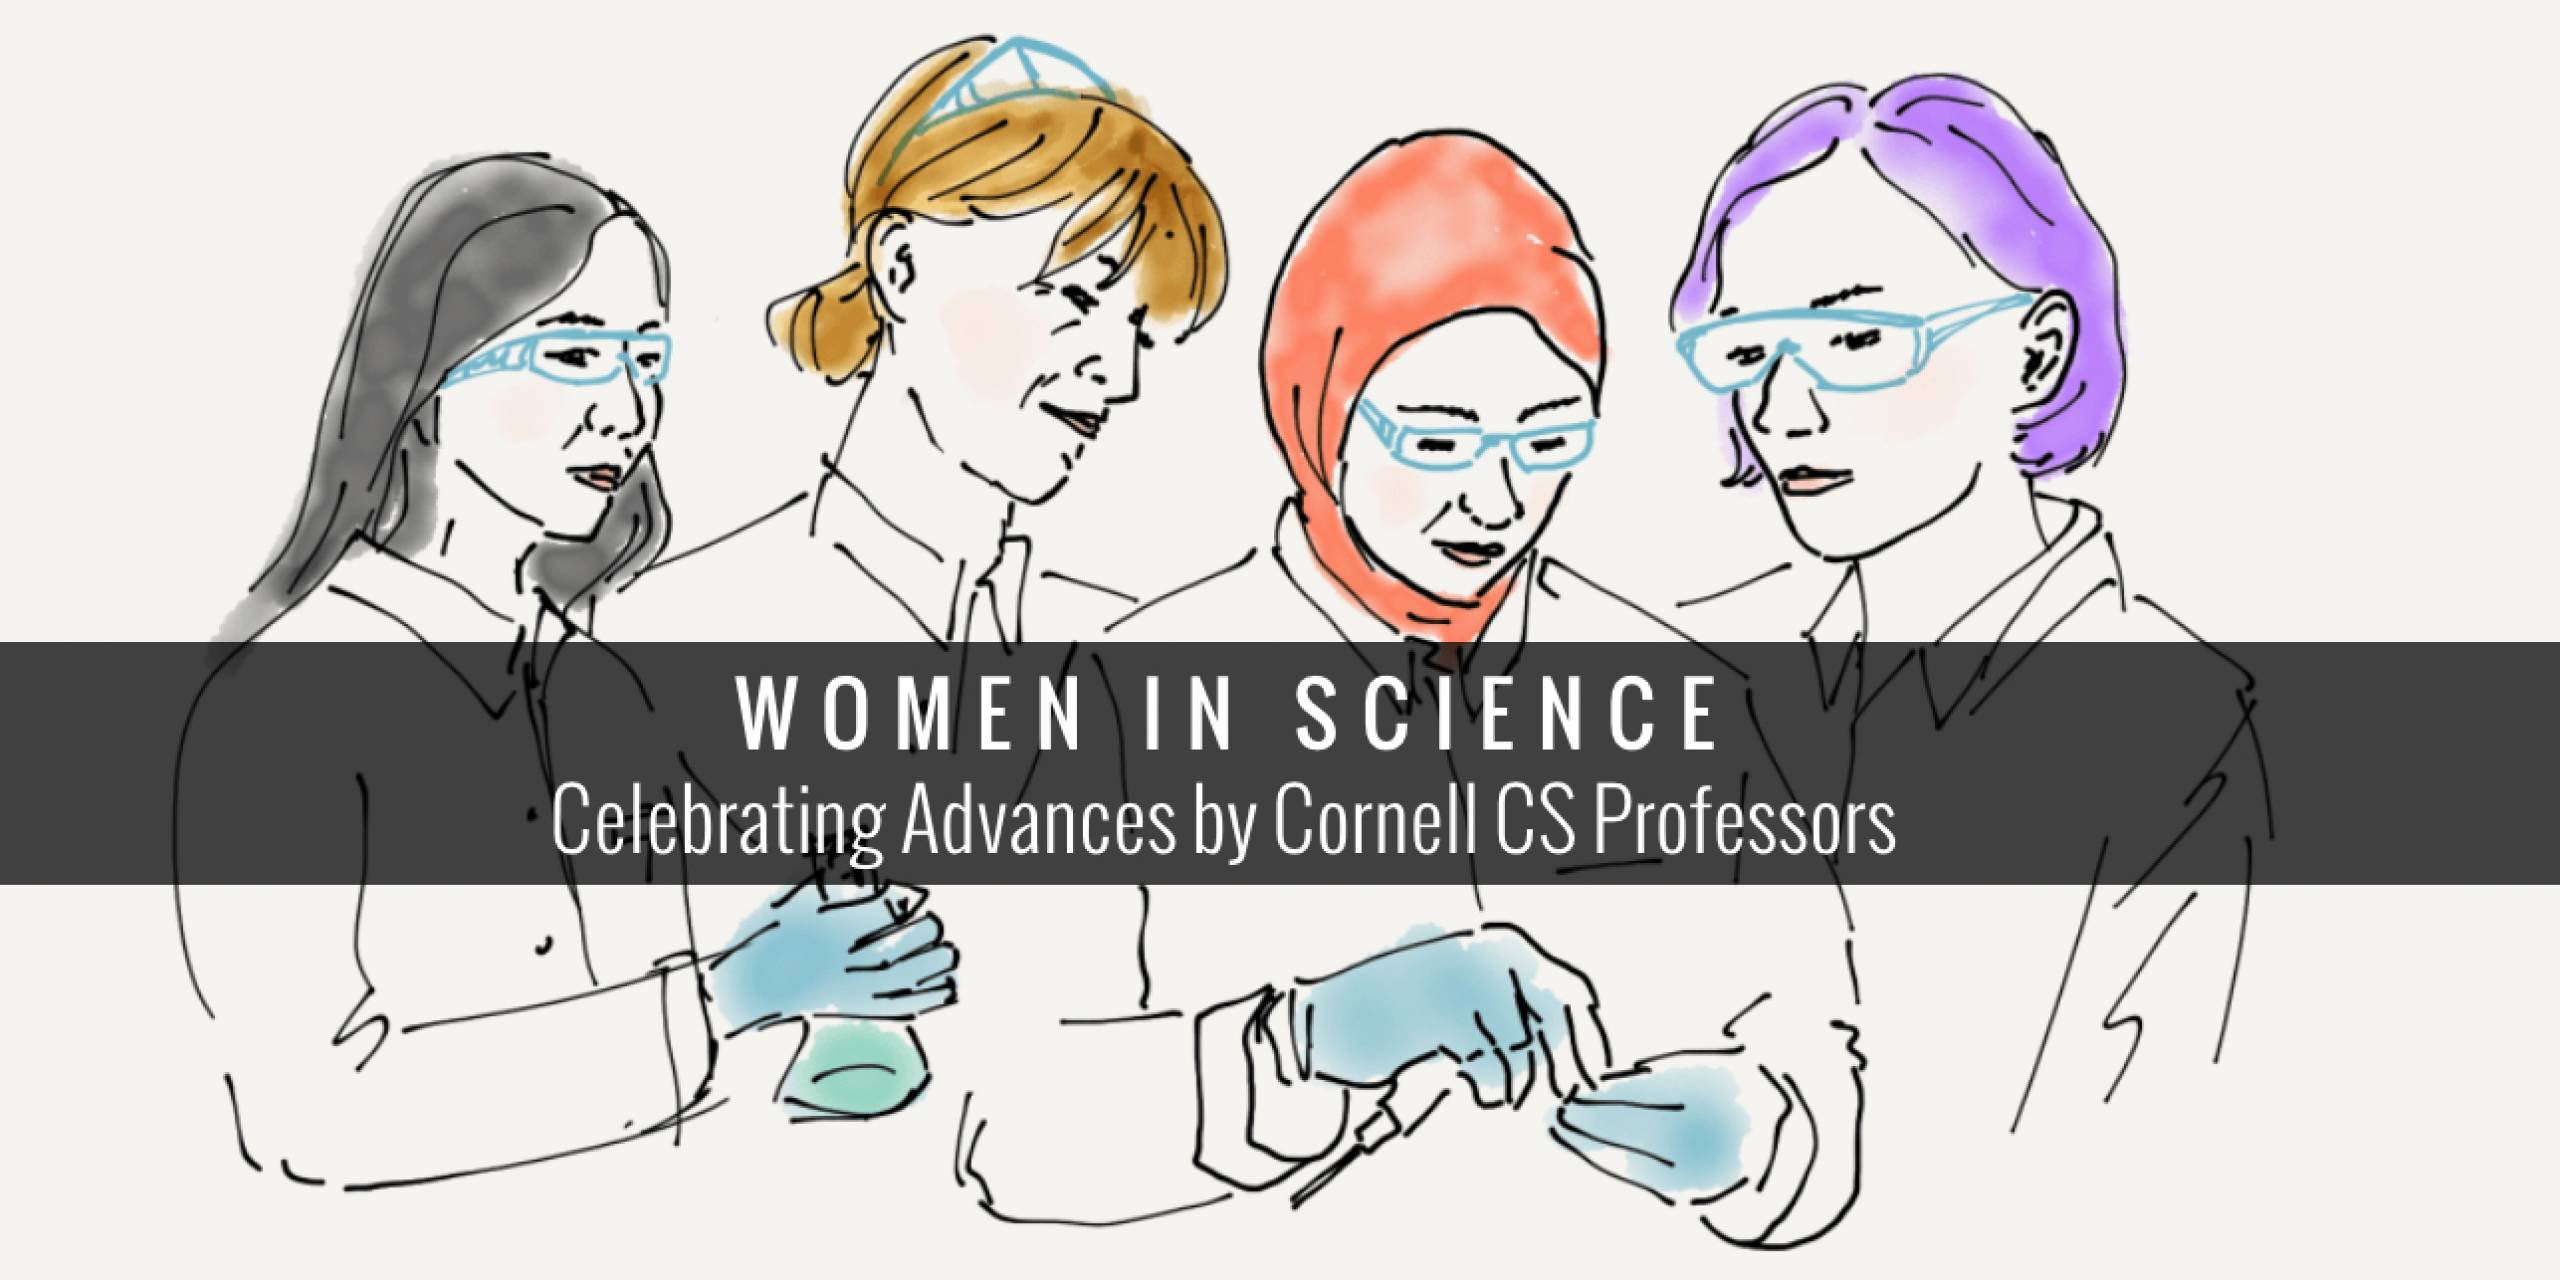 Women in Science: Celebrating Advances by Cornell CS Professors